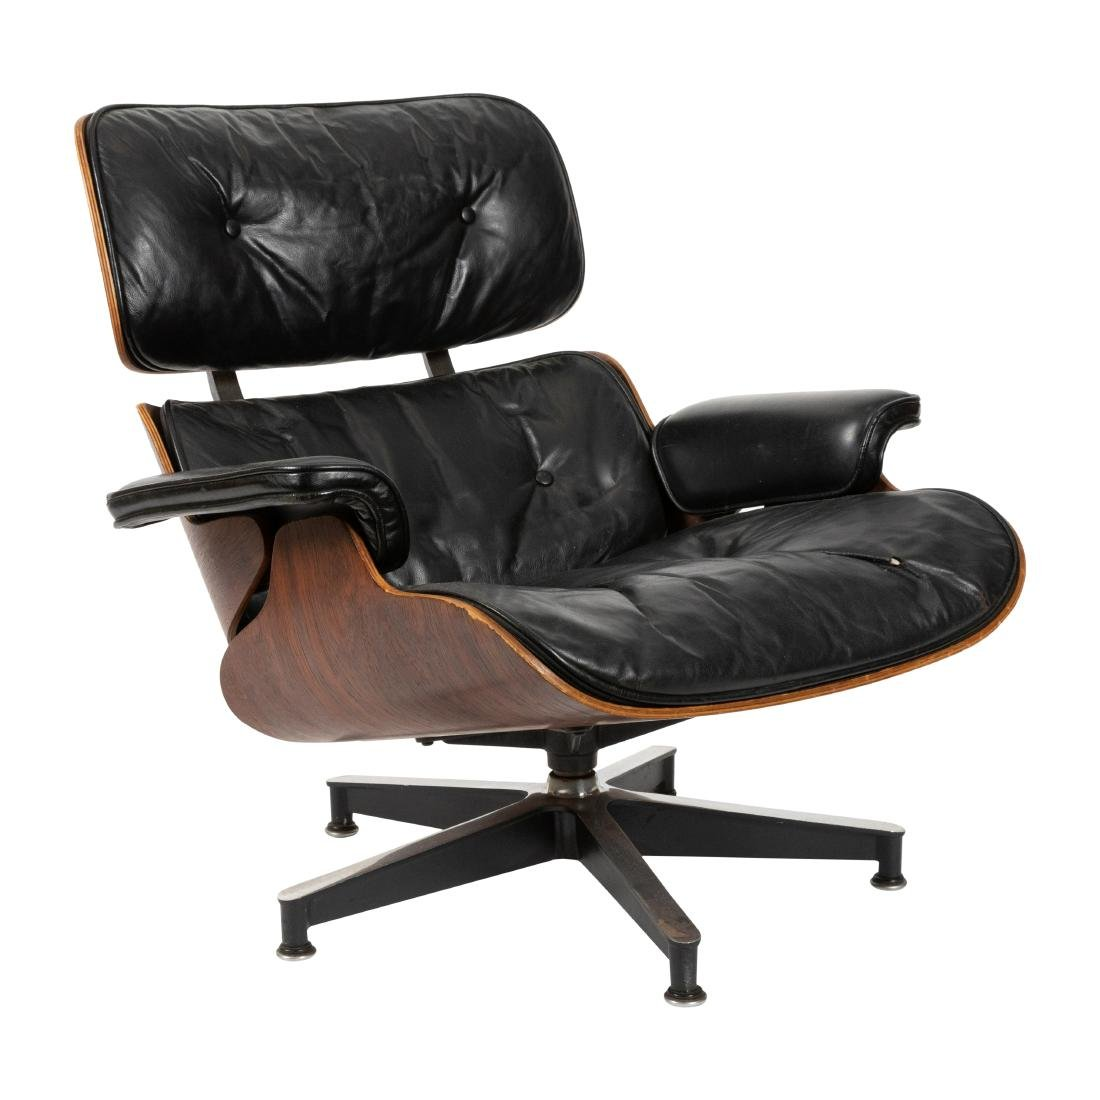 Charles & Ray Eames - Rosewood Lounge and Ottoman - 2